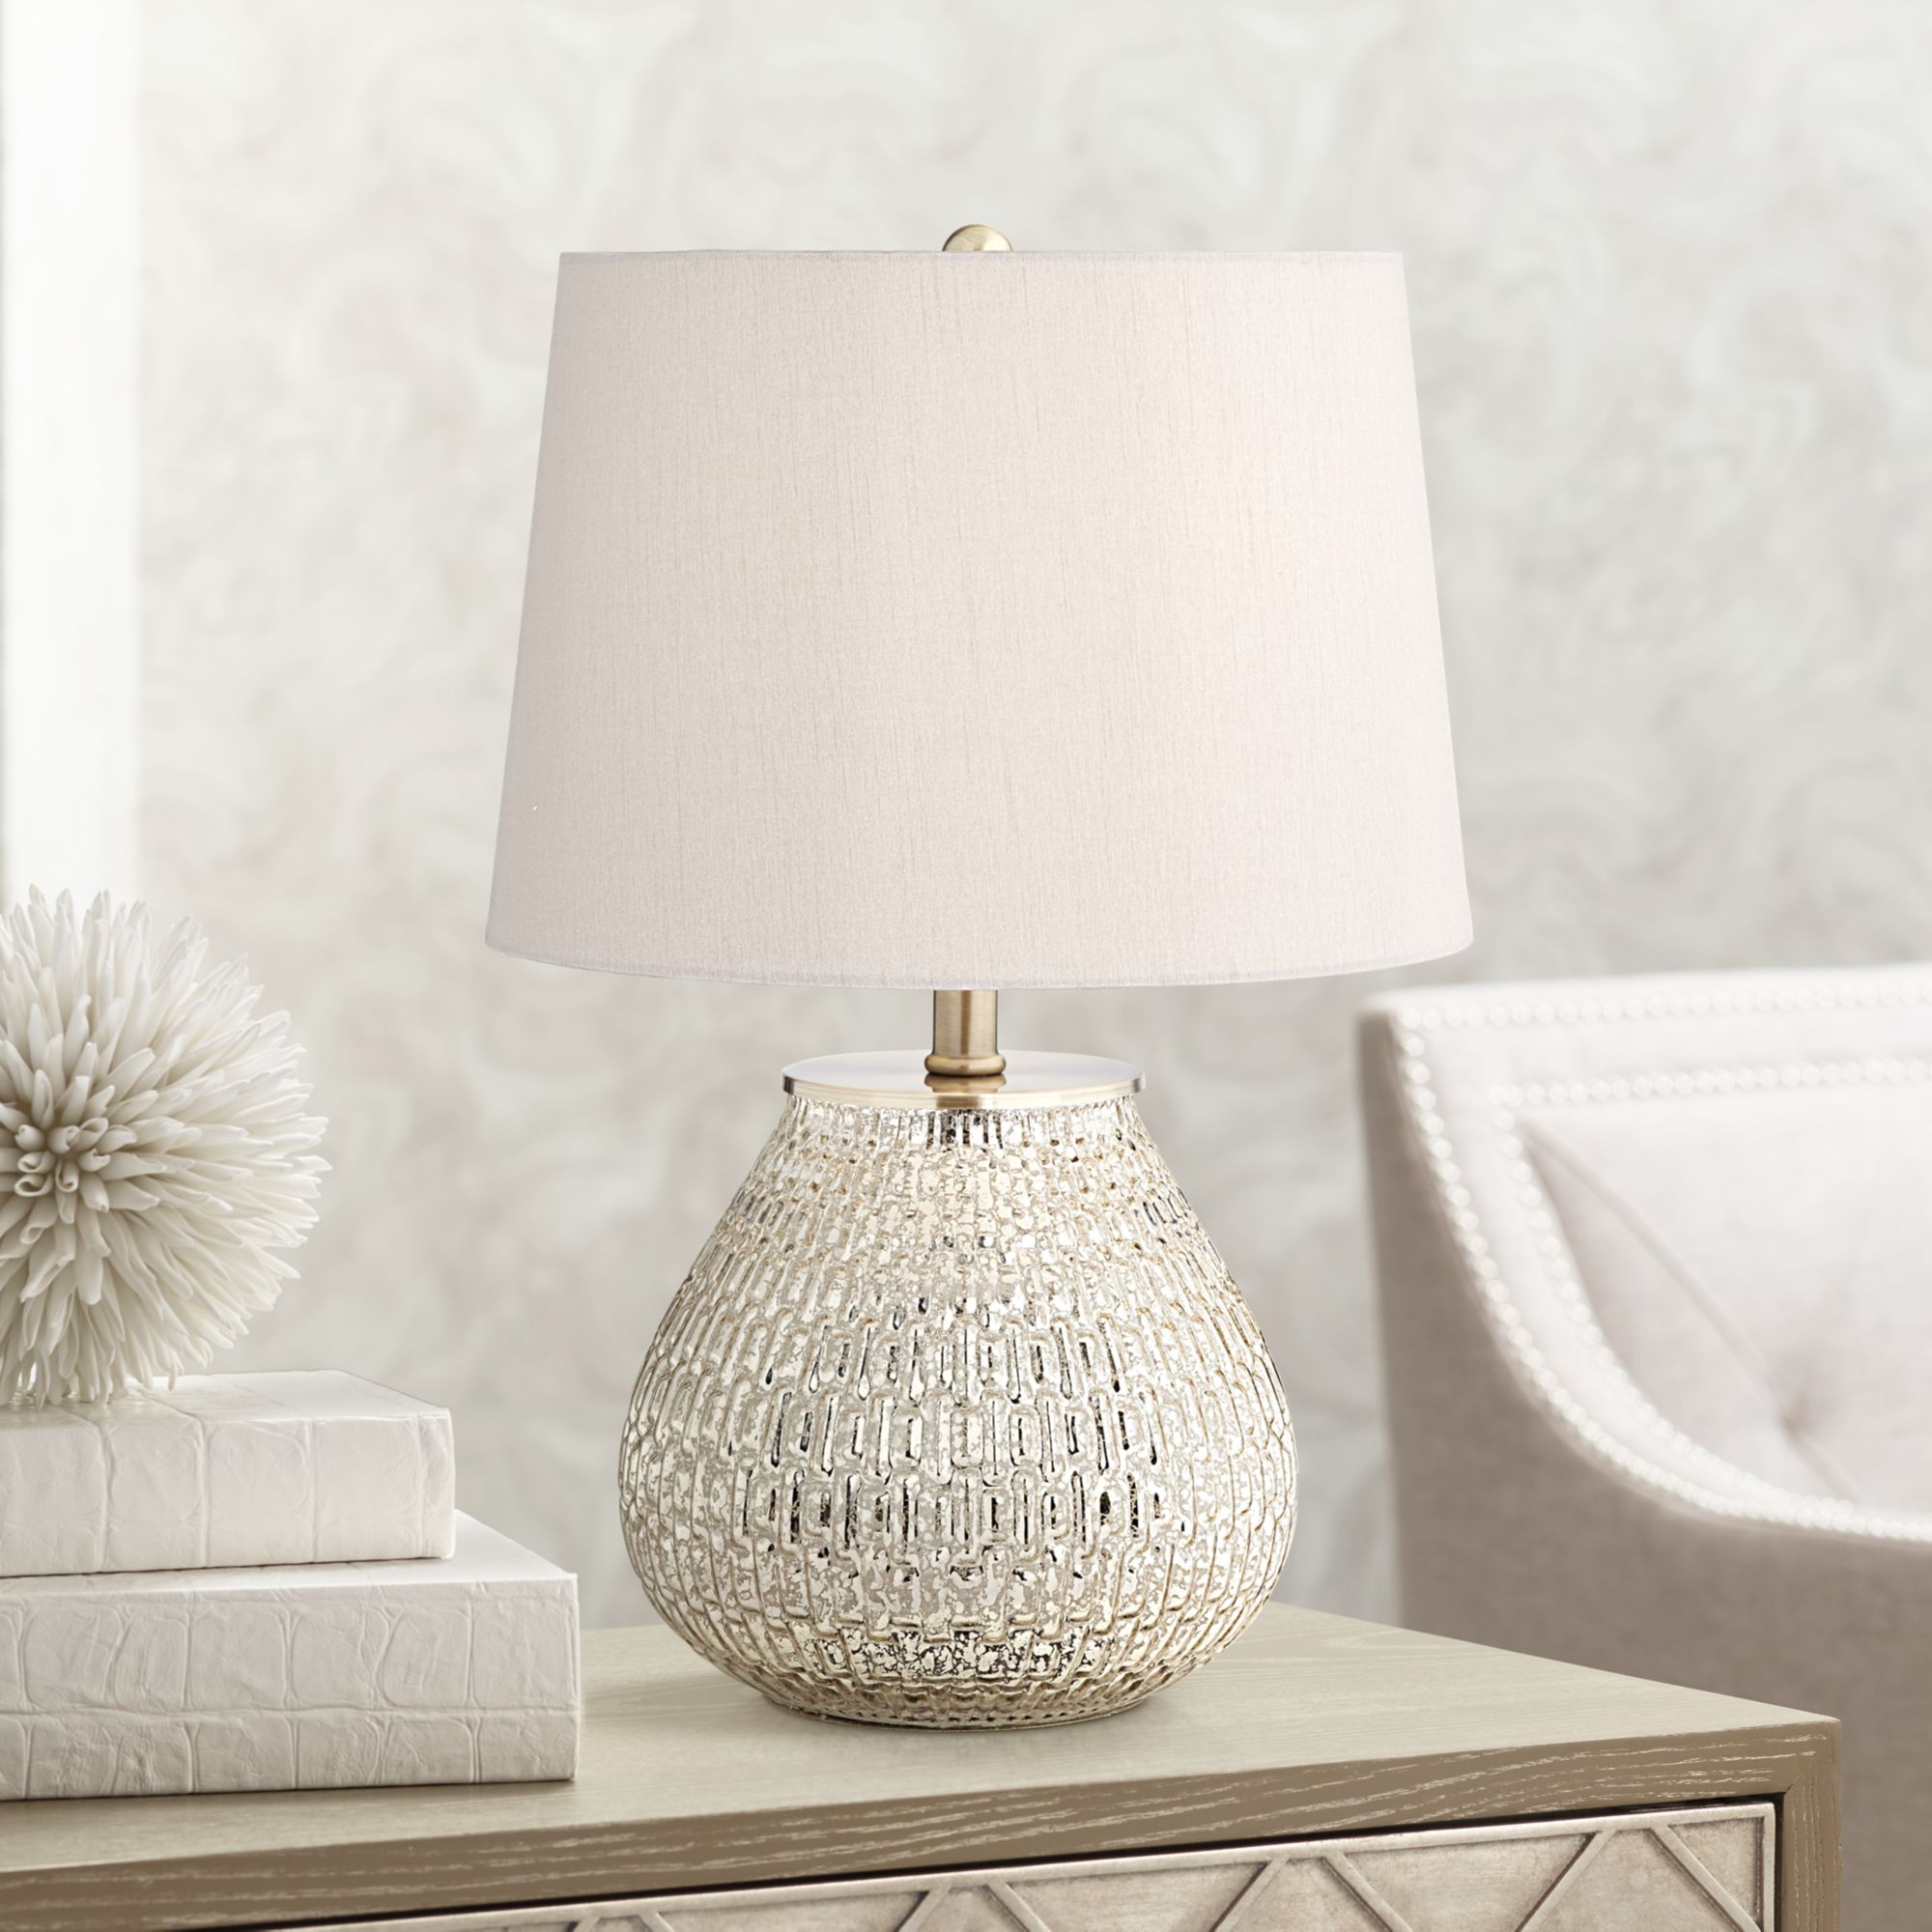 lighting cottage accent table lamp high mercury glass drum teardrop gray shade for bedroom bedside nightstand office end with door antique round dining clear lucite room furniture